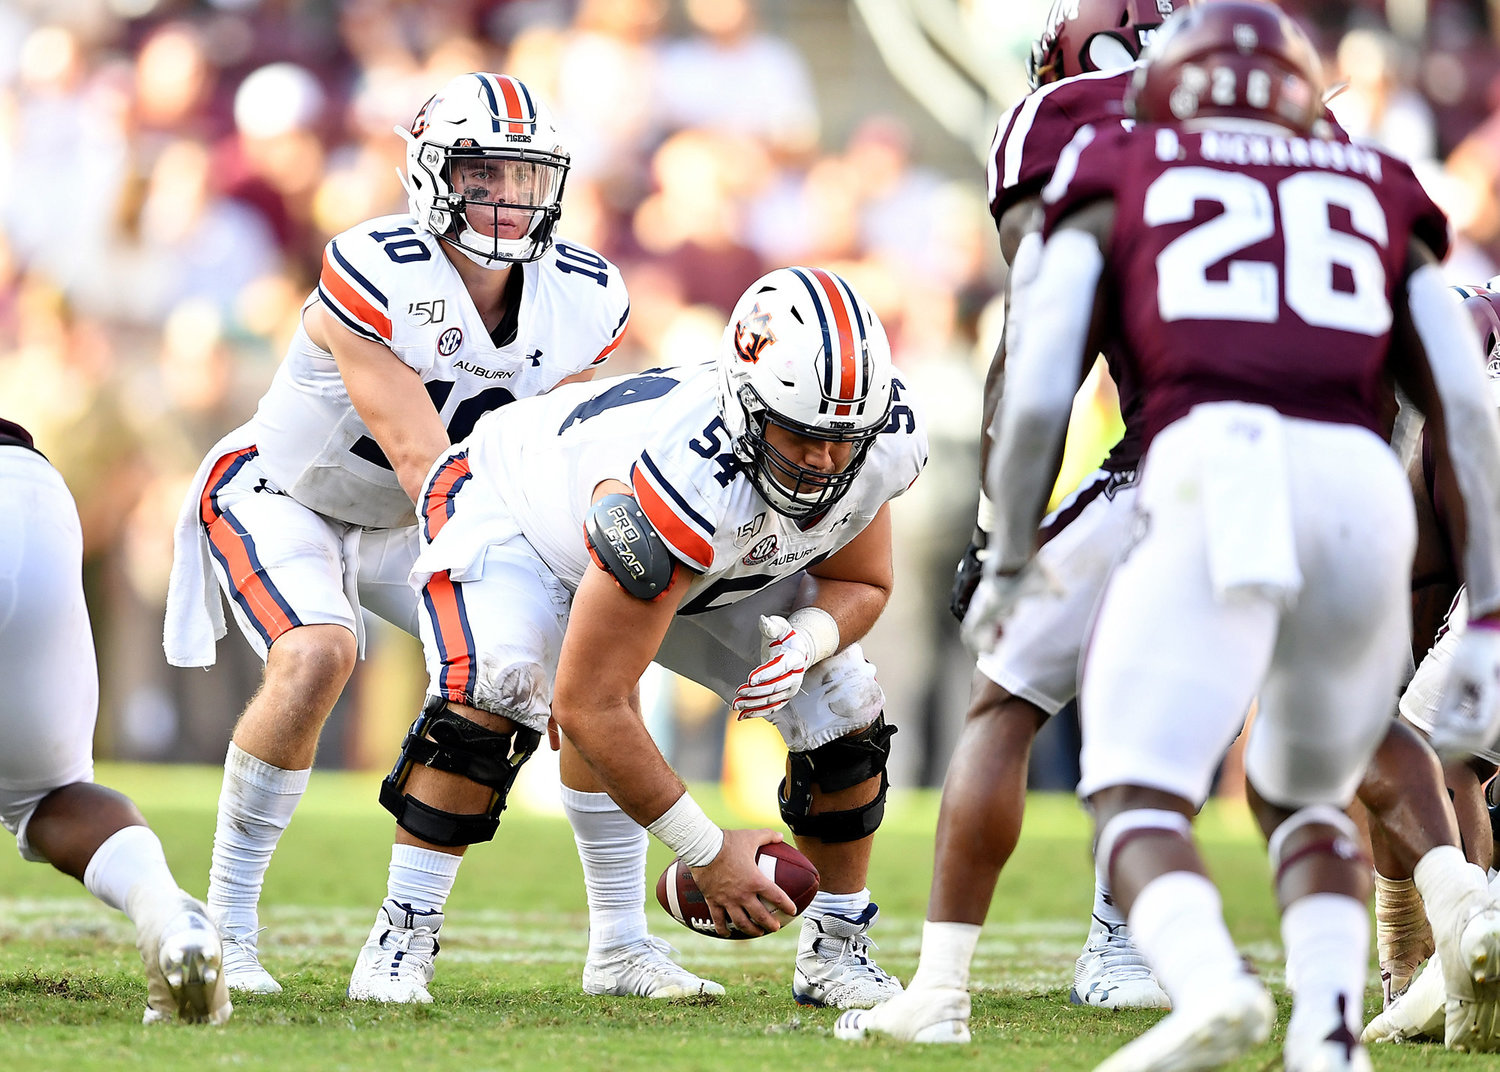 Auburn Tigers quarterback Bo Nix (10) prepares to take the snap during the second half of an NCAA football game against the Texas A&M Aggies Saturday, Sept. 21, 2019, at Kyle Field in College Station Texas. Auburn wins 28-20.